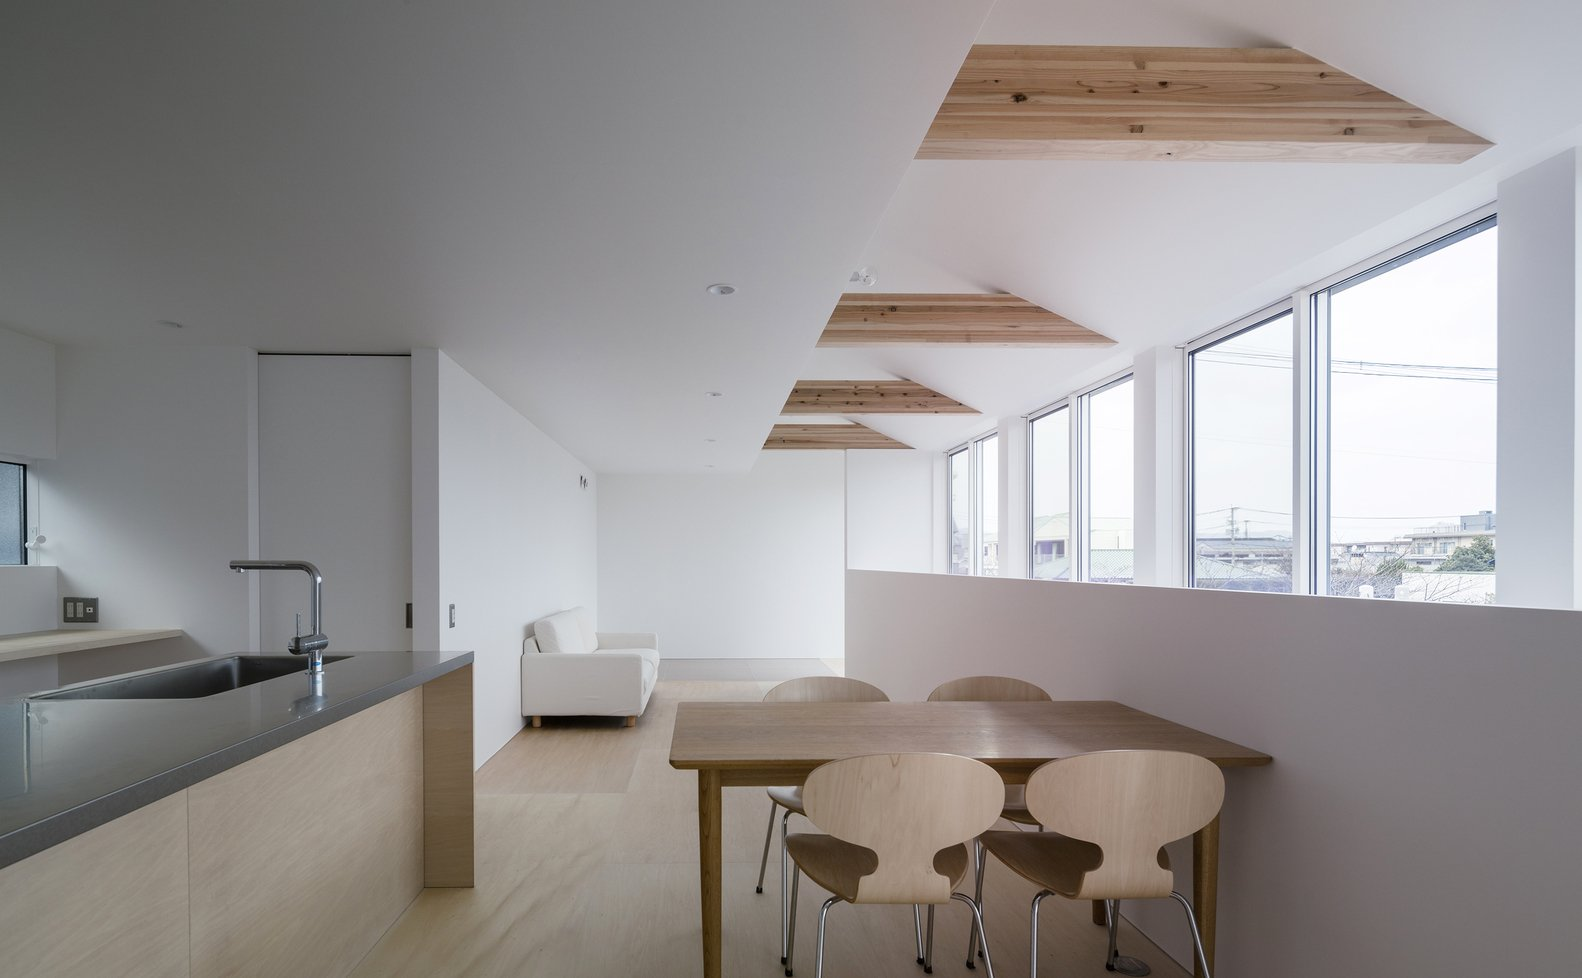 Photo 1 of 7 in House in Futako by Yabashi Architects & Associates